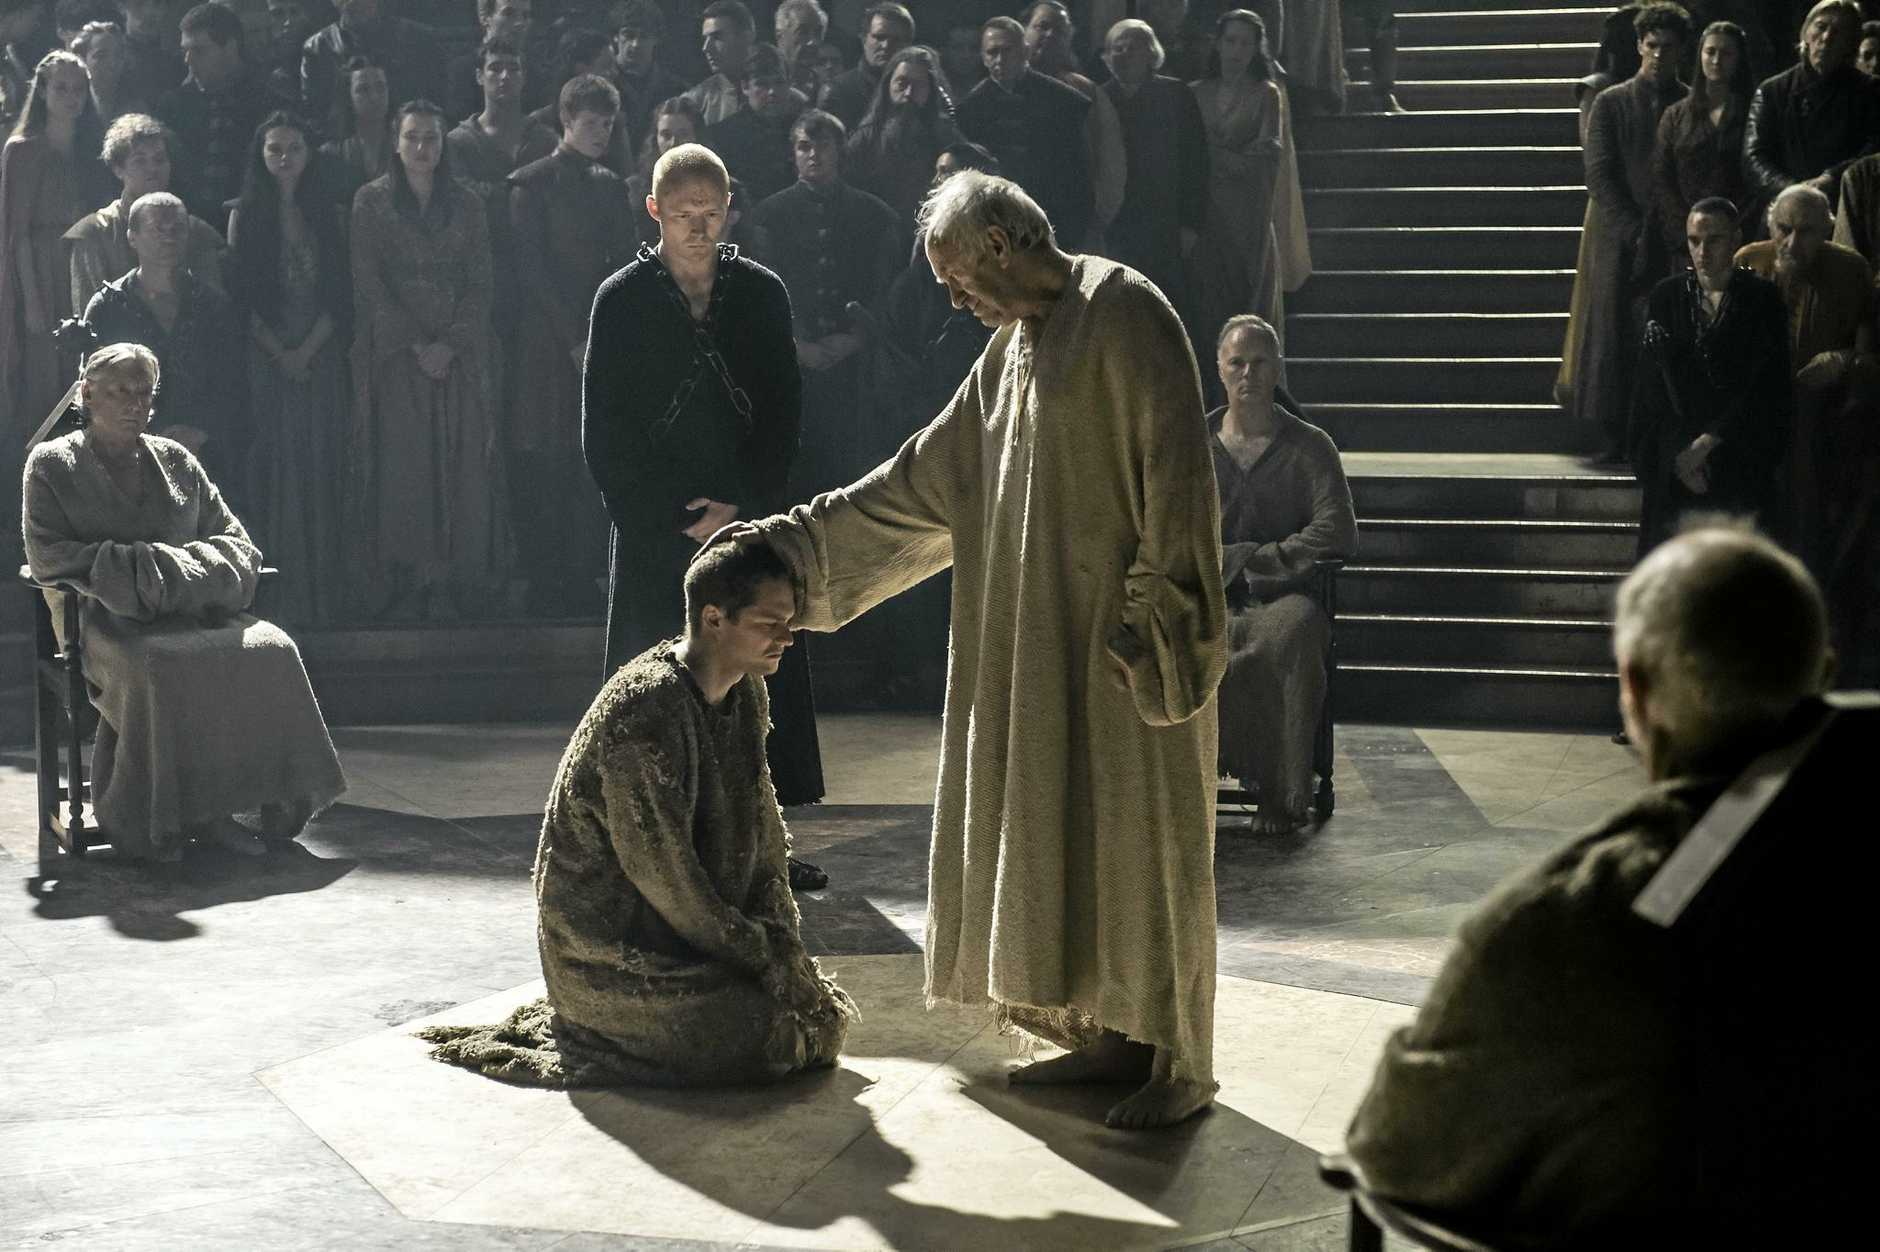 Eugene Simon, Finn Jones and Jonathan Pryce, all pictured centre, in a scene from season six episode 10 of Game of Thrones.